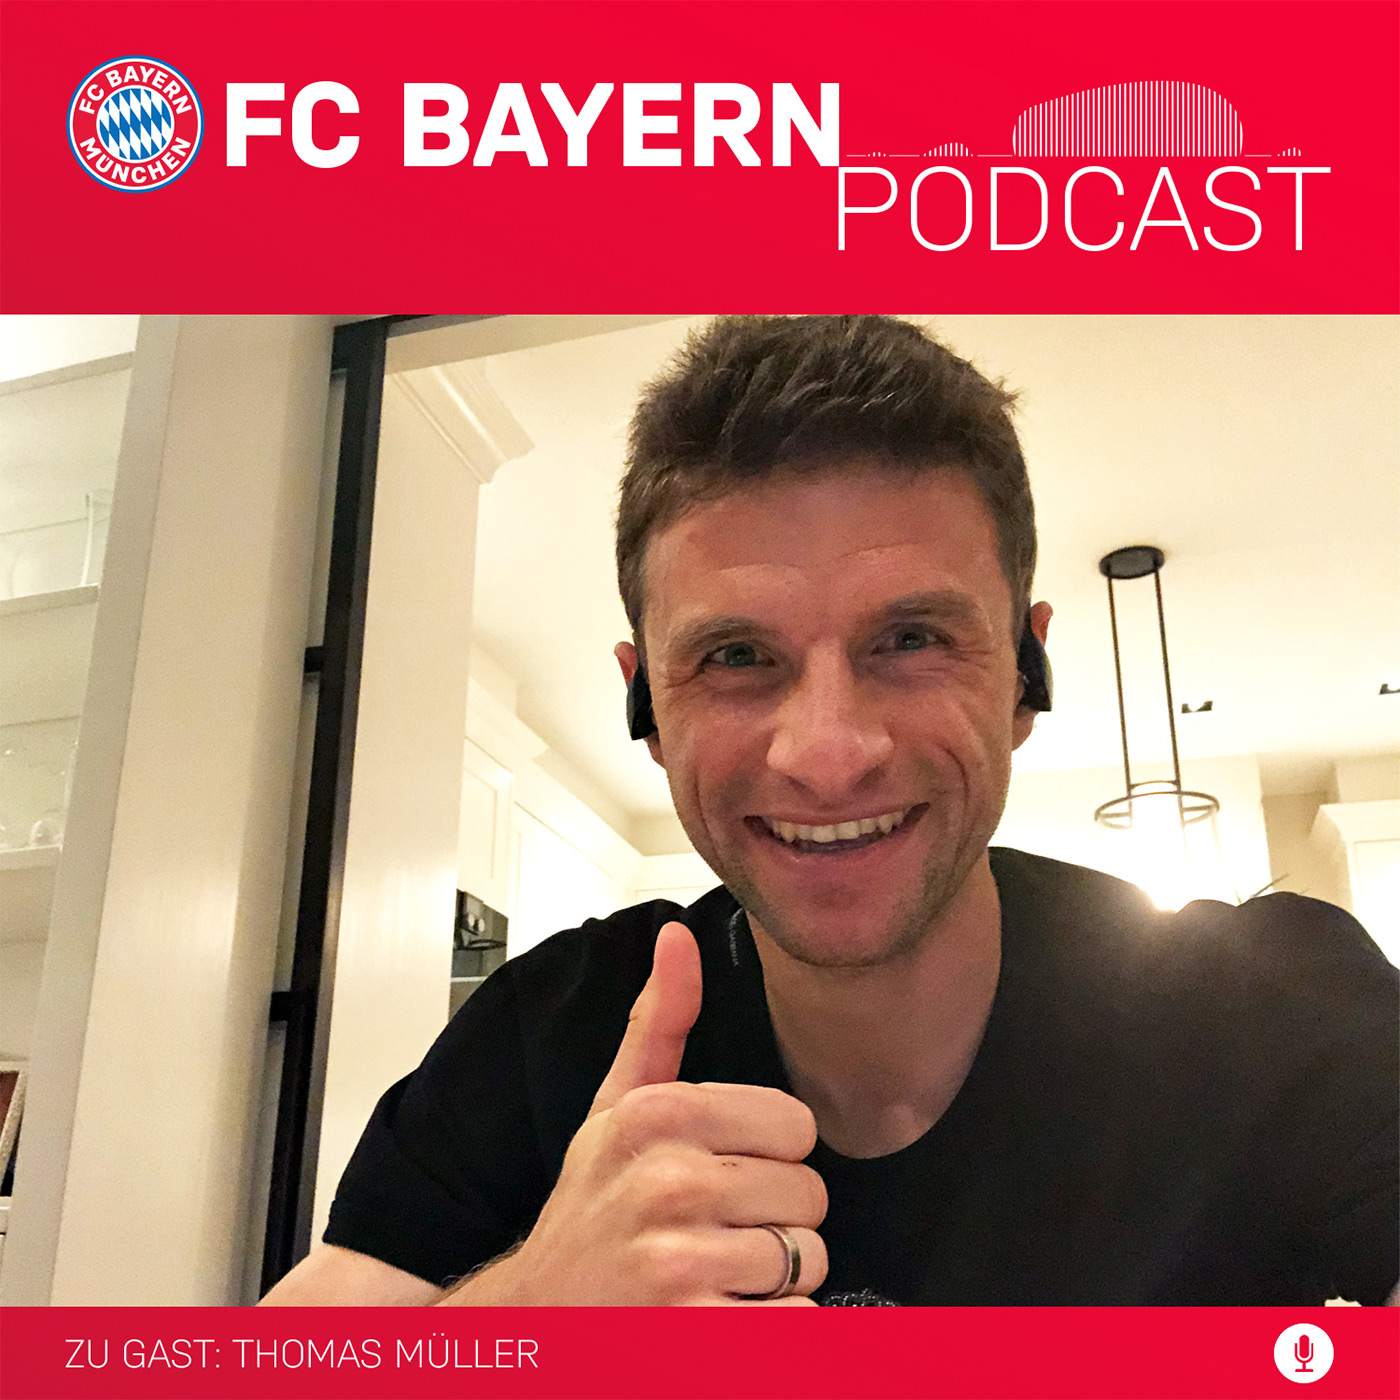 Thomas Müller - Mr. FC Bayern